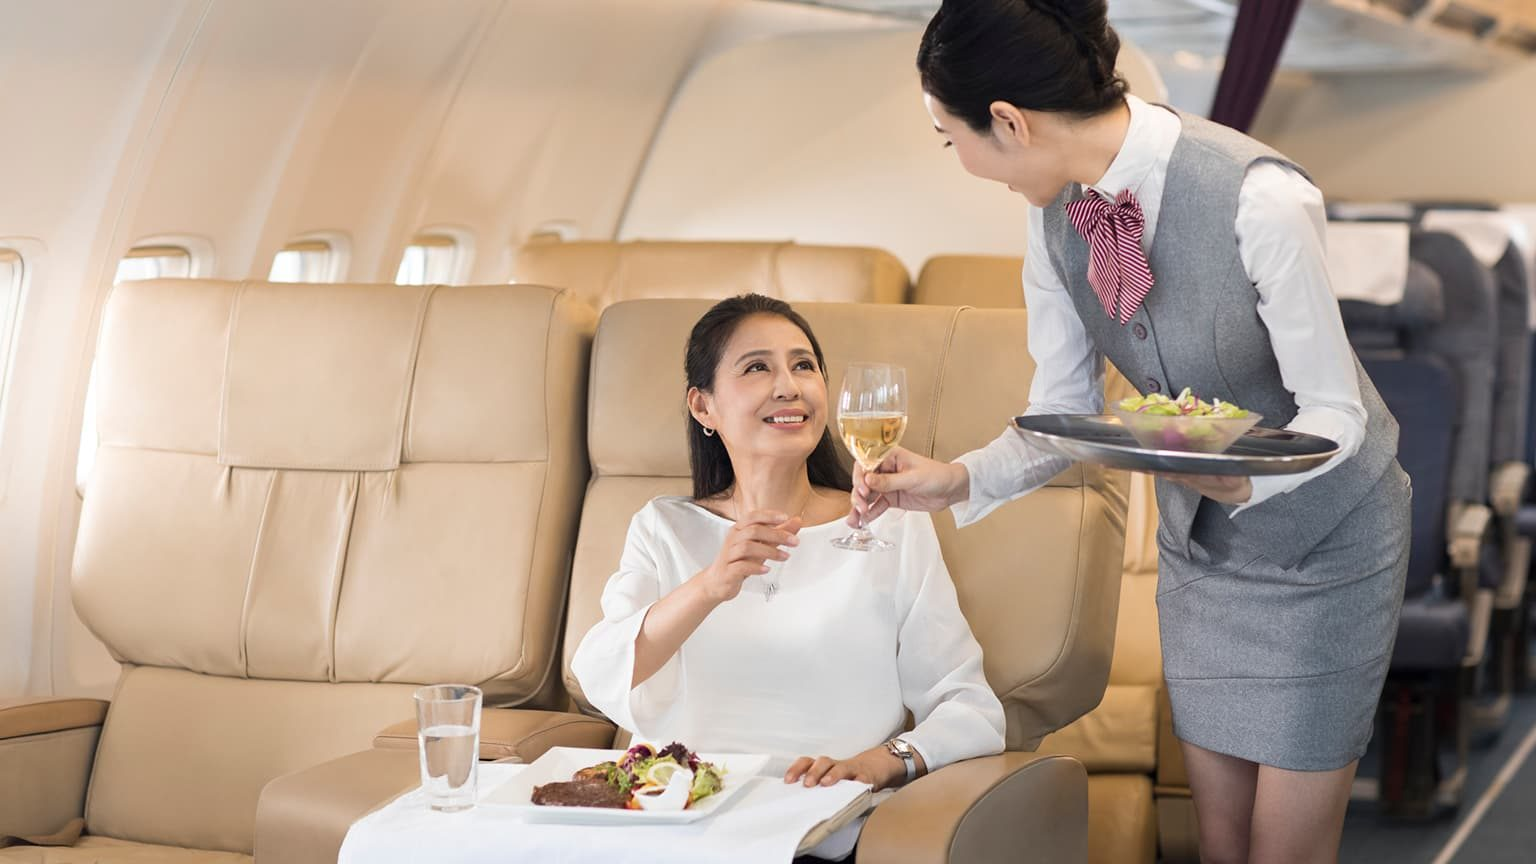 Airline stewardess serving food to passenger